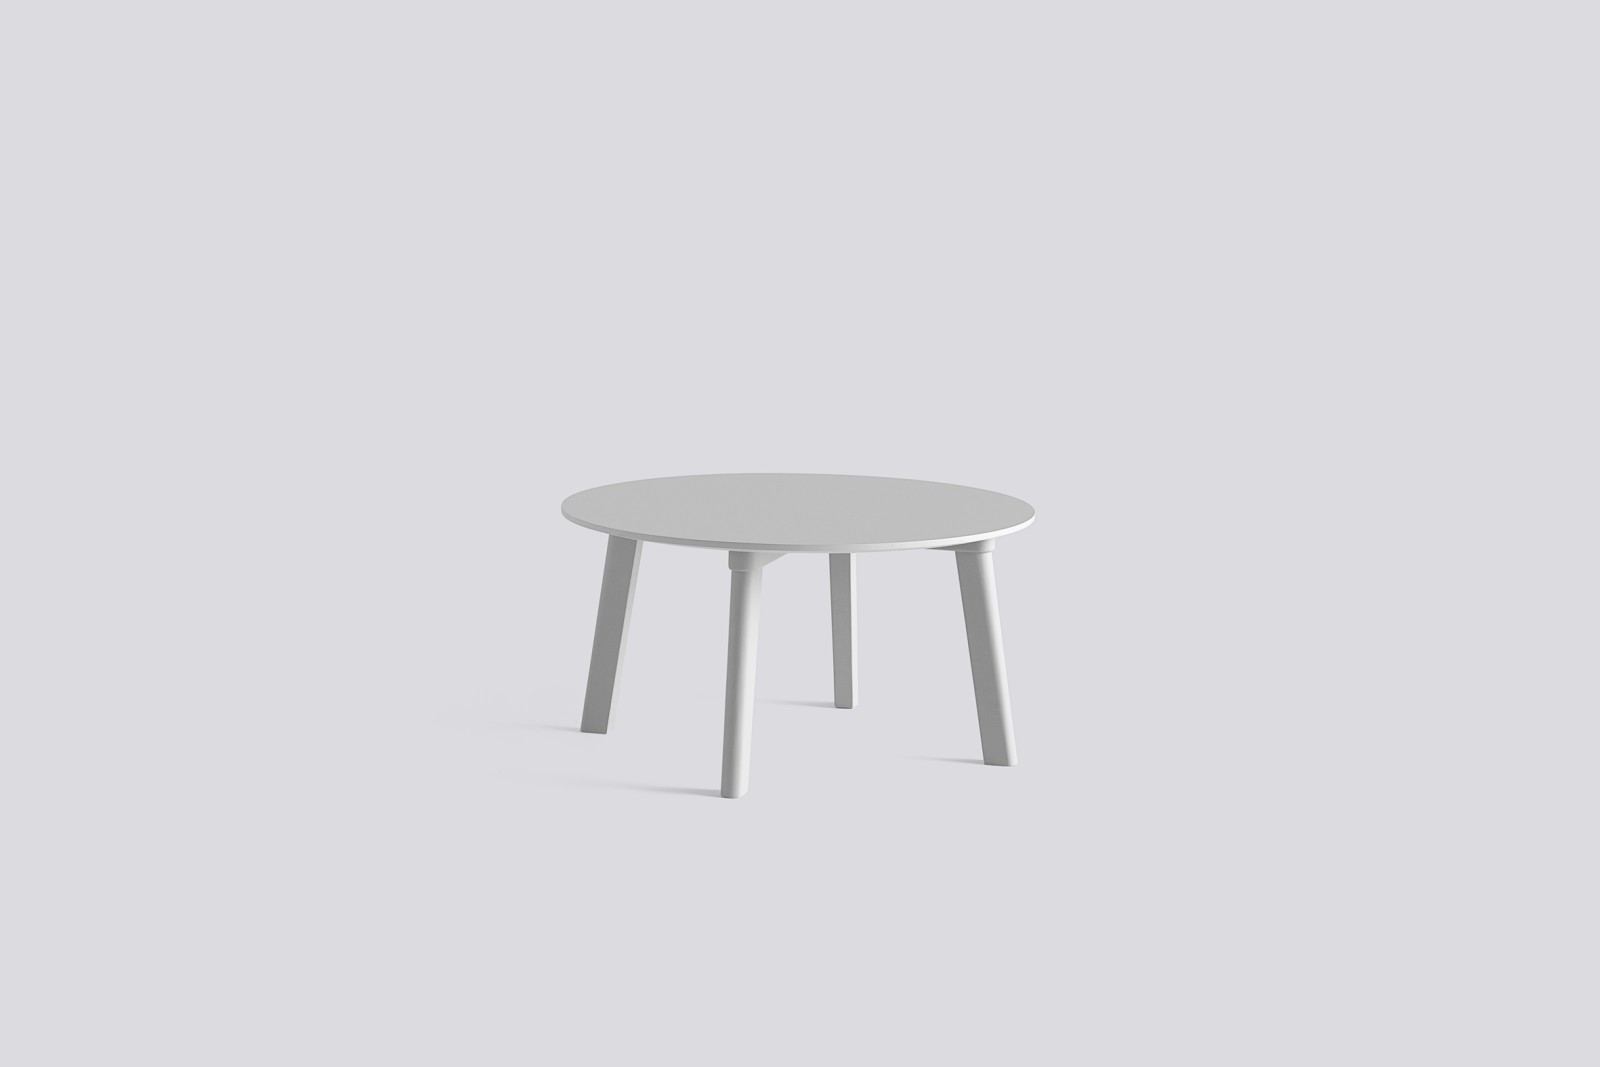 Copenhague Deux (CPH 250) Round Coffee Table Dusty Grey Laminate Top, Dusty Grey Beech Base